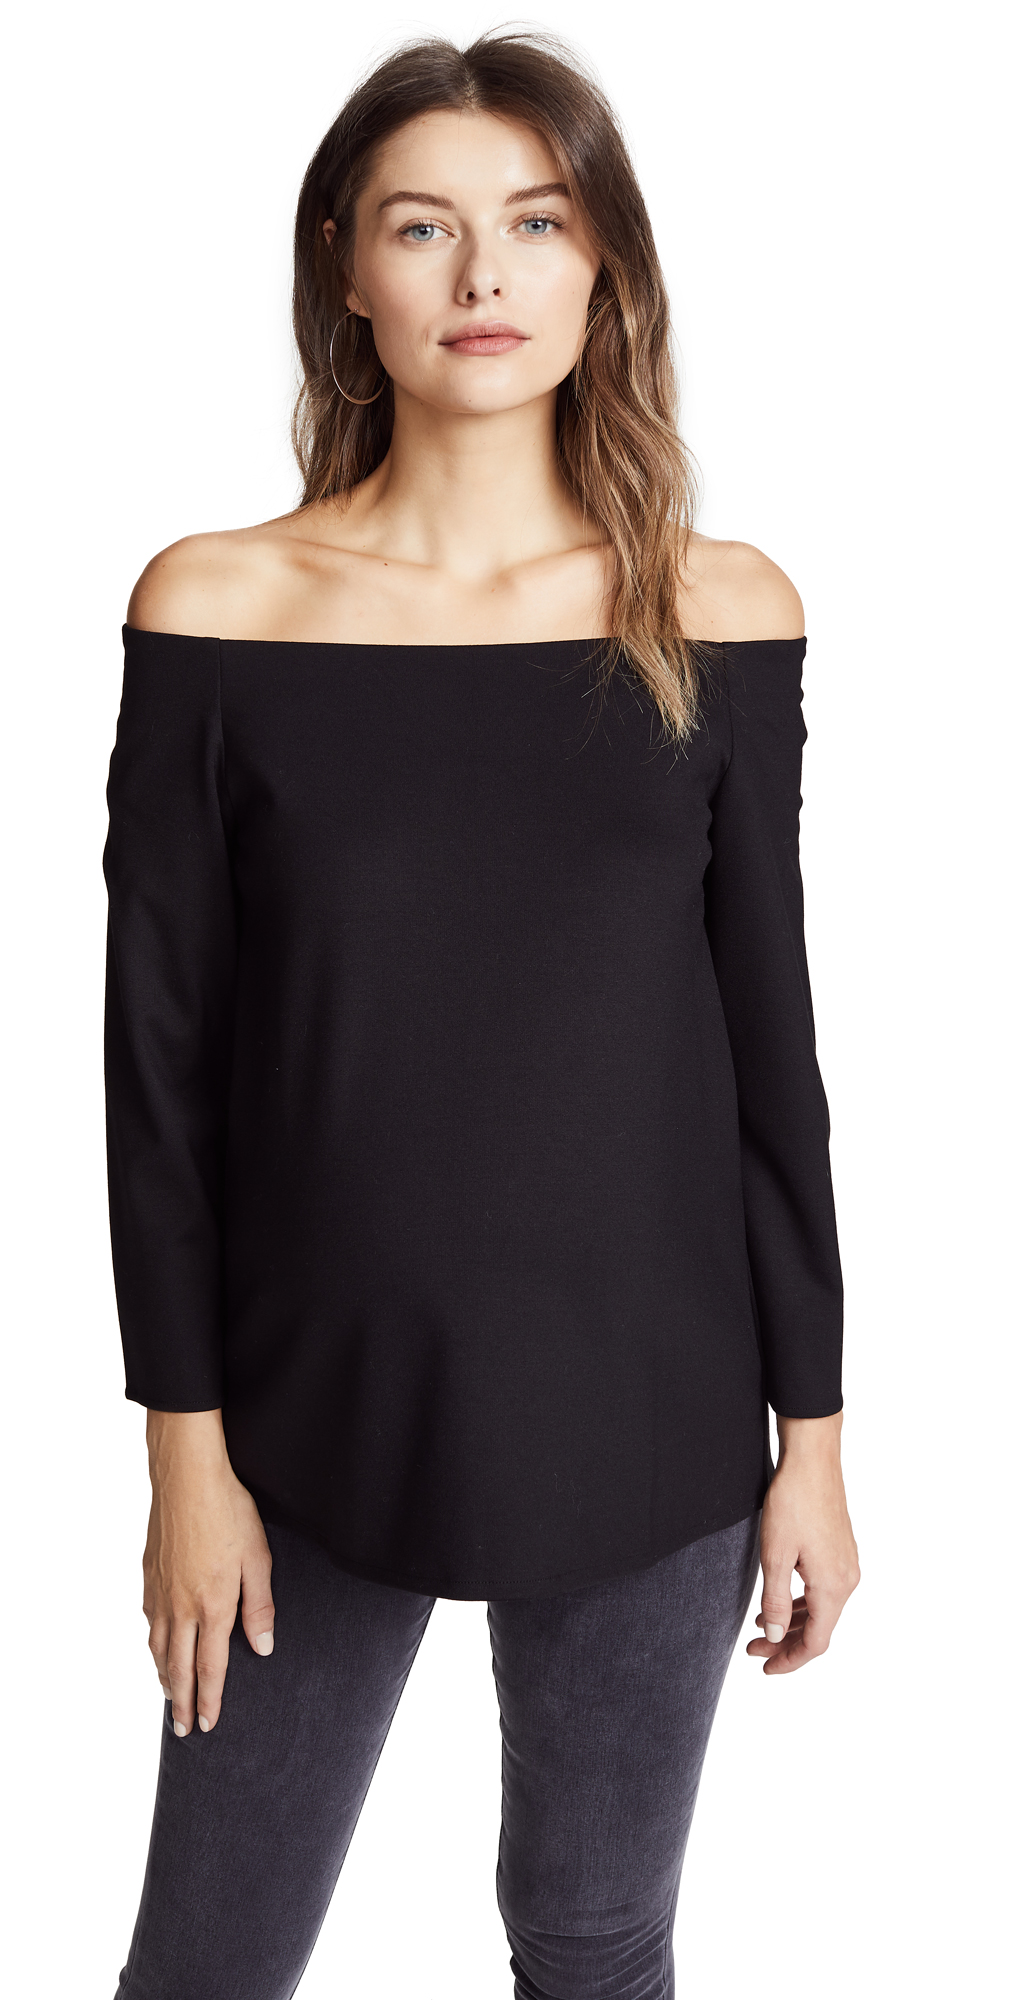 The Date Night Top